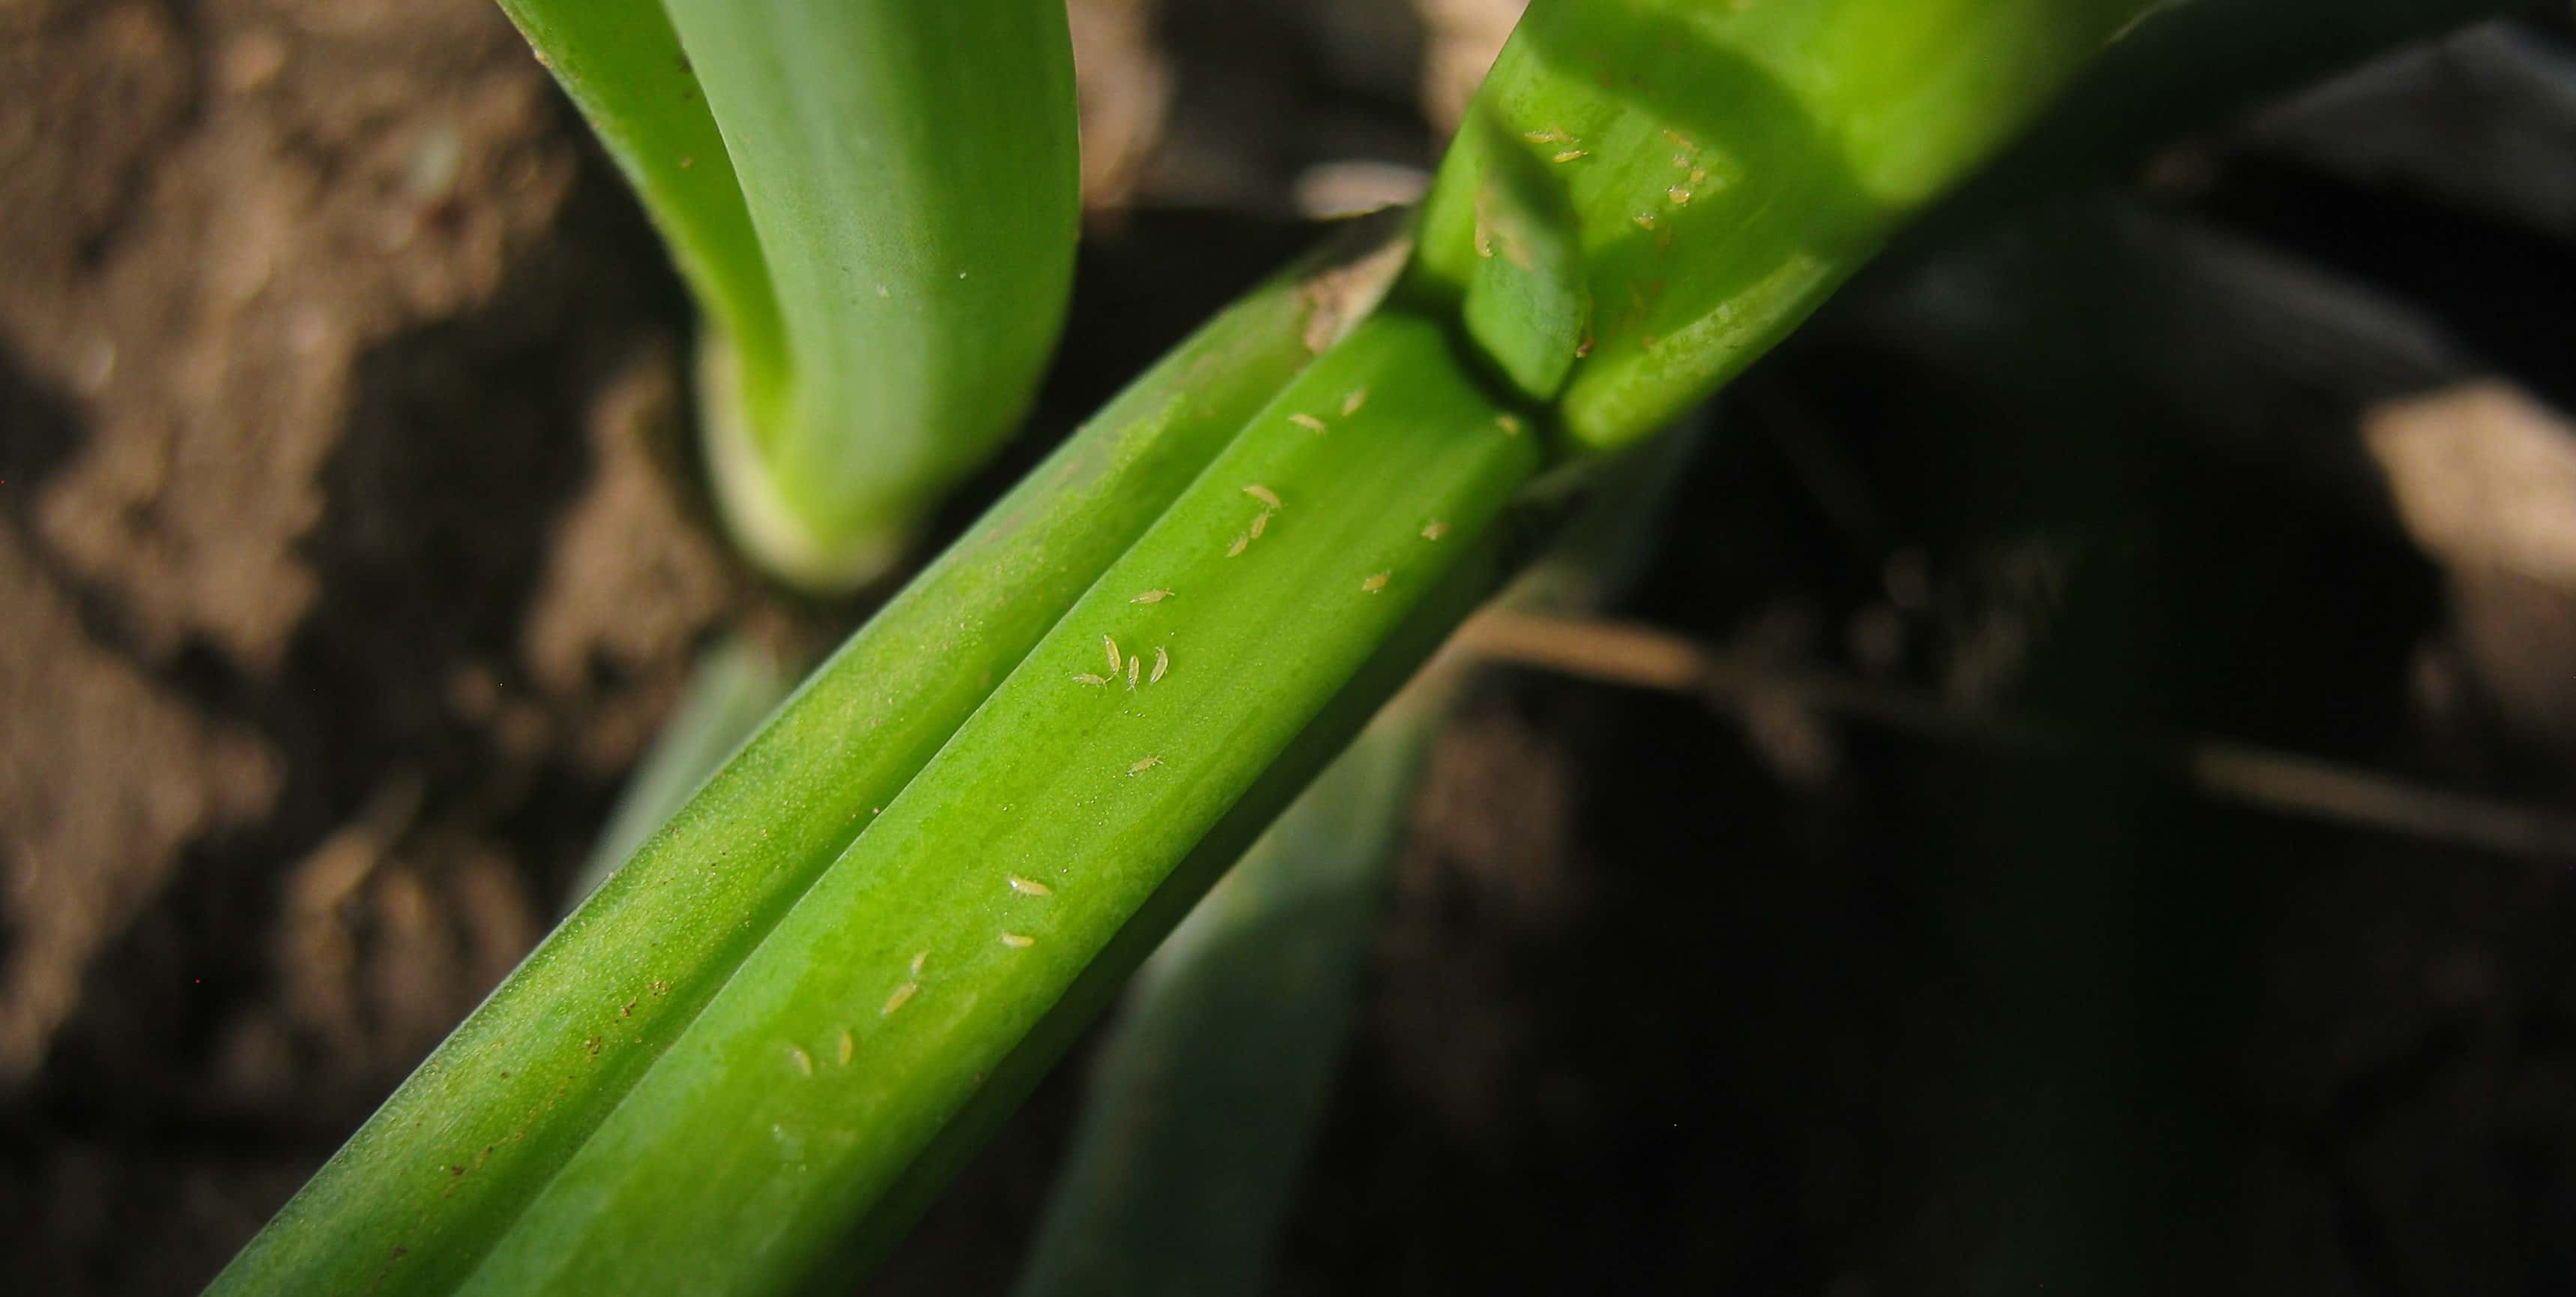 How to protect the crop from Onion Thrips?